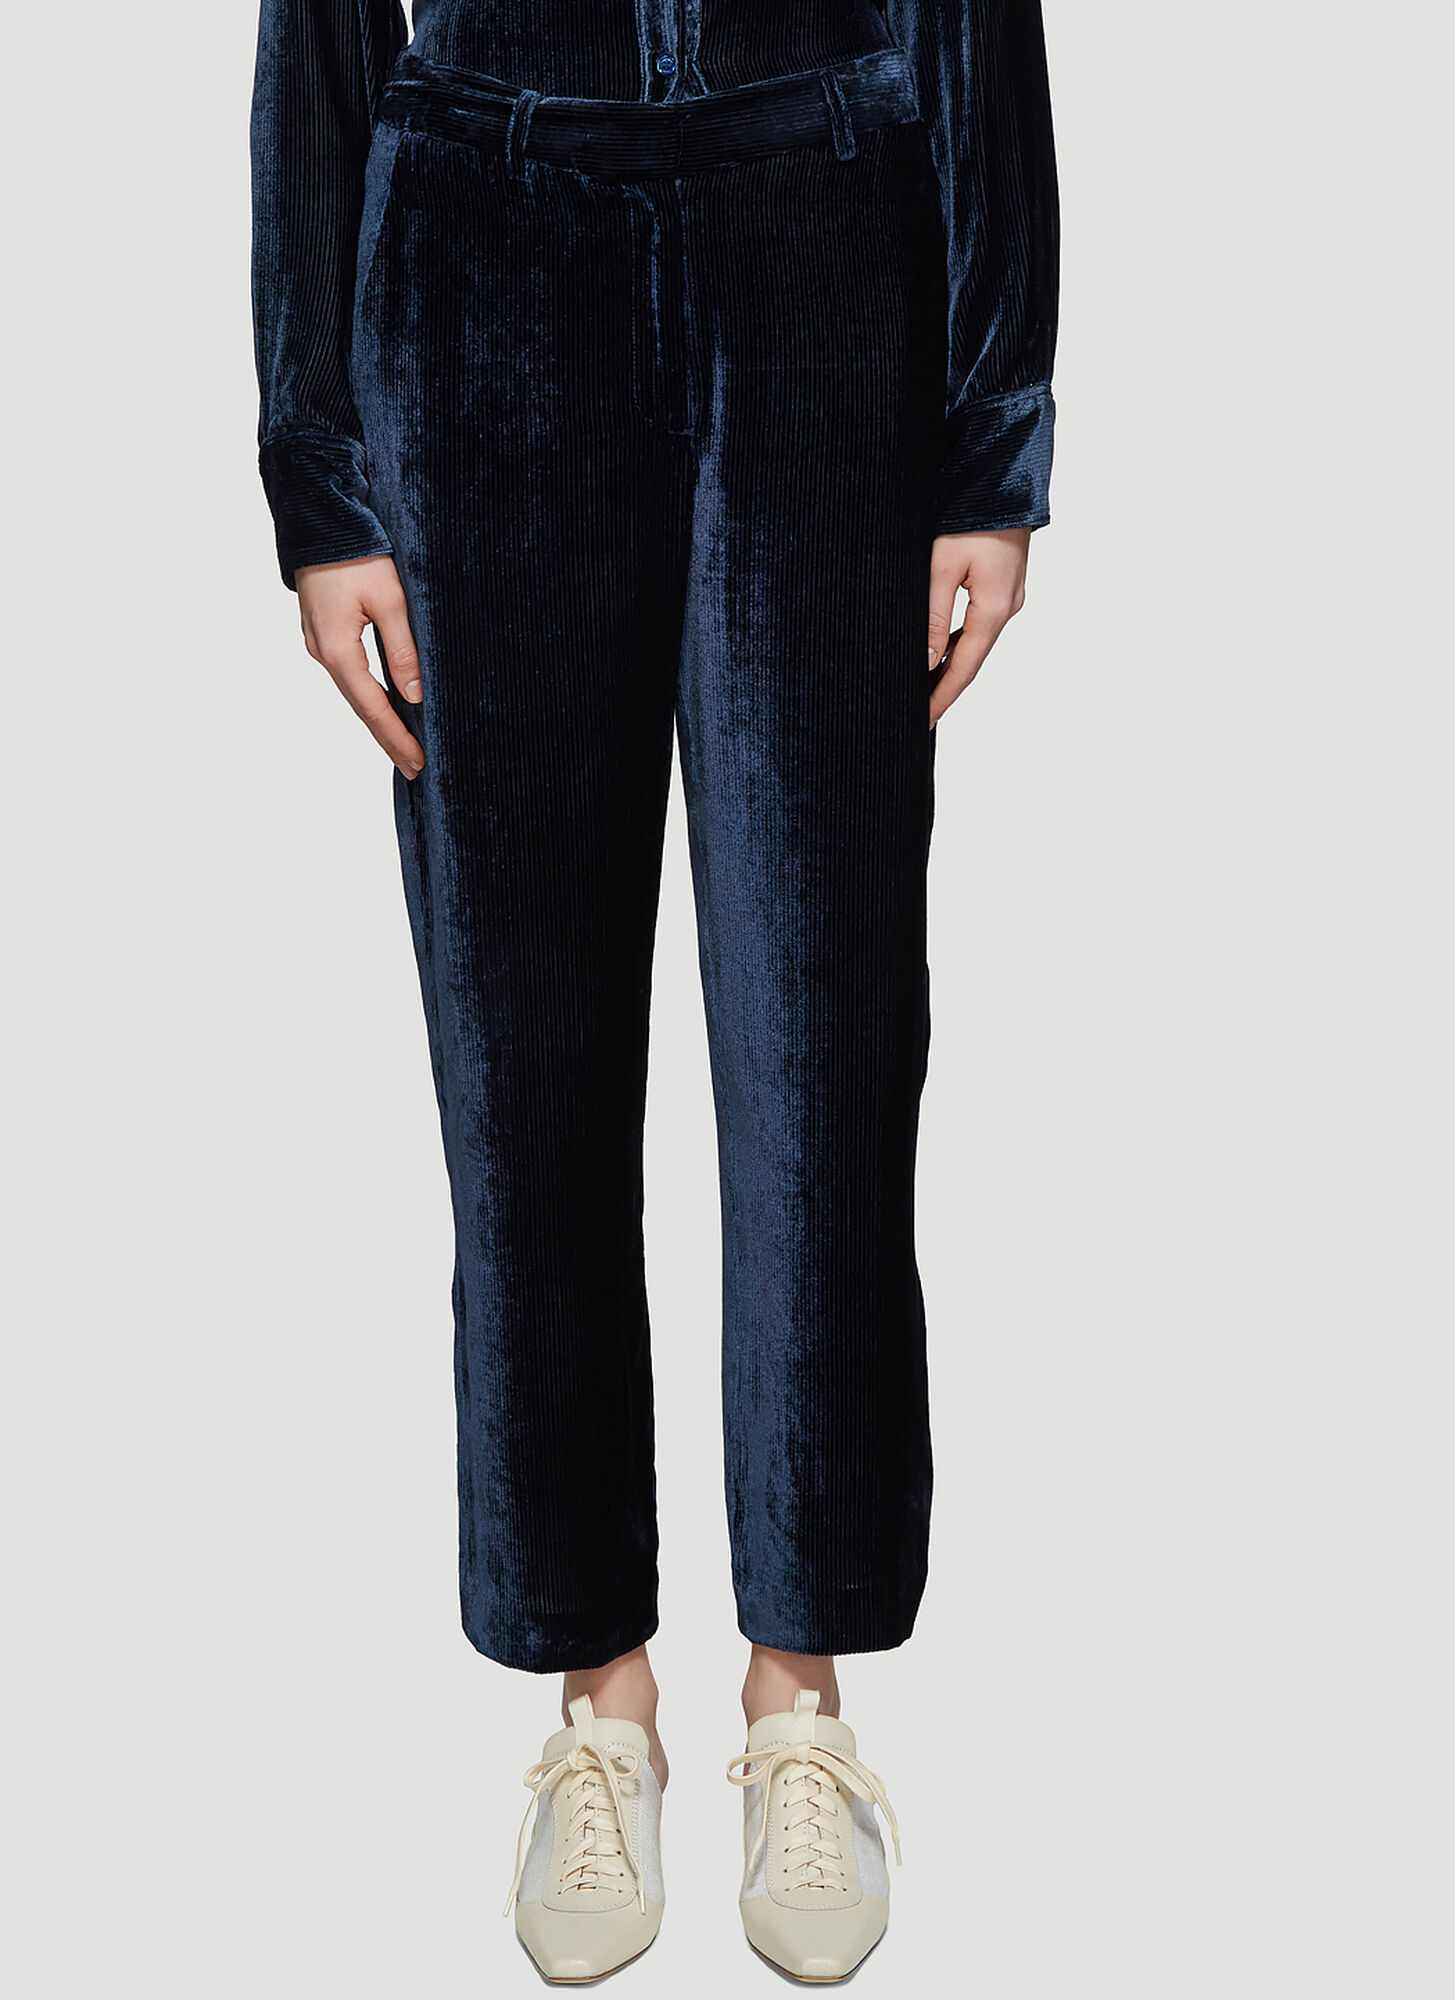 Sies Marjan Willa Fluid Corduroy Cropped Pants in Navy